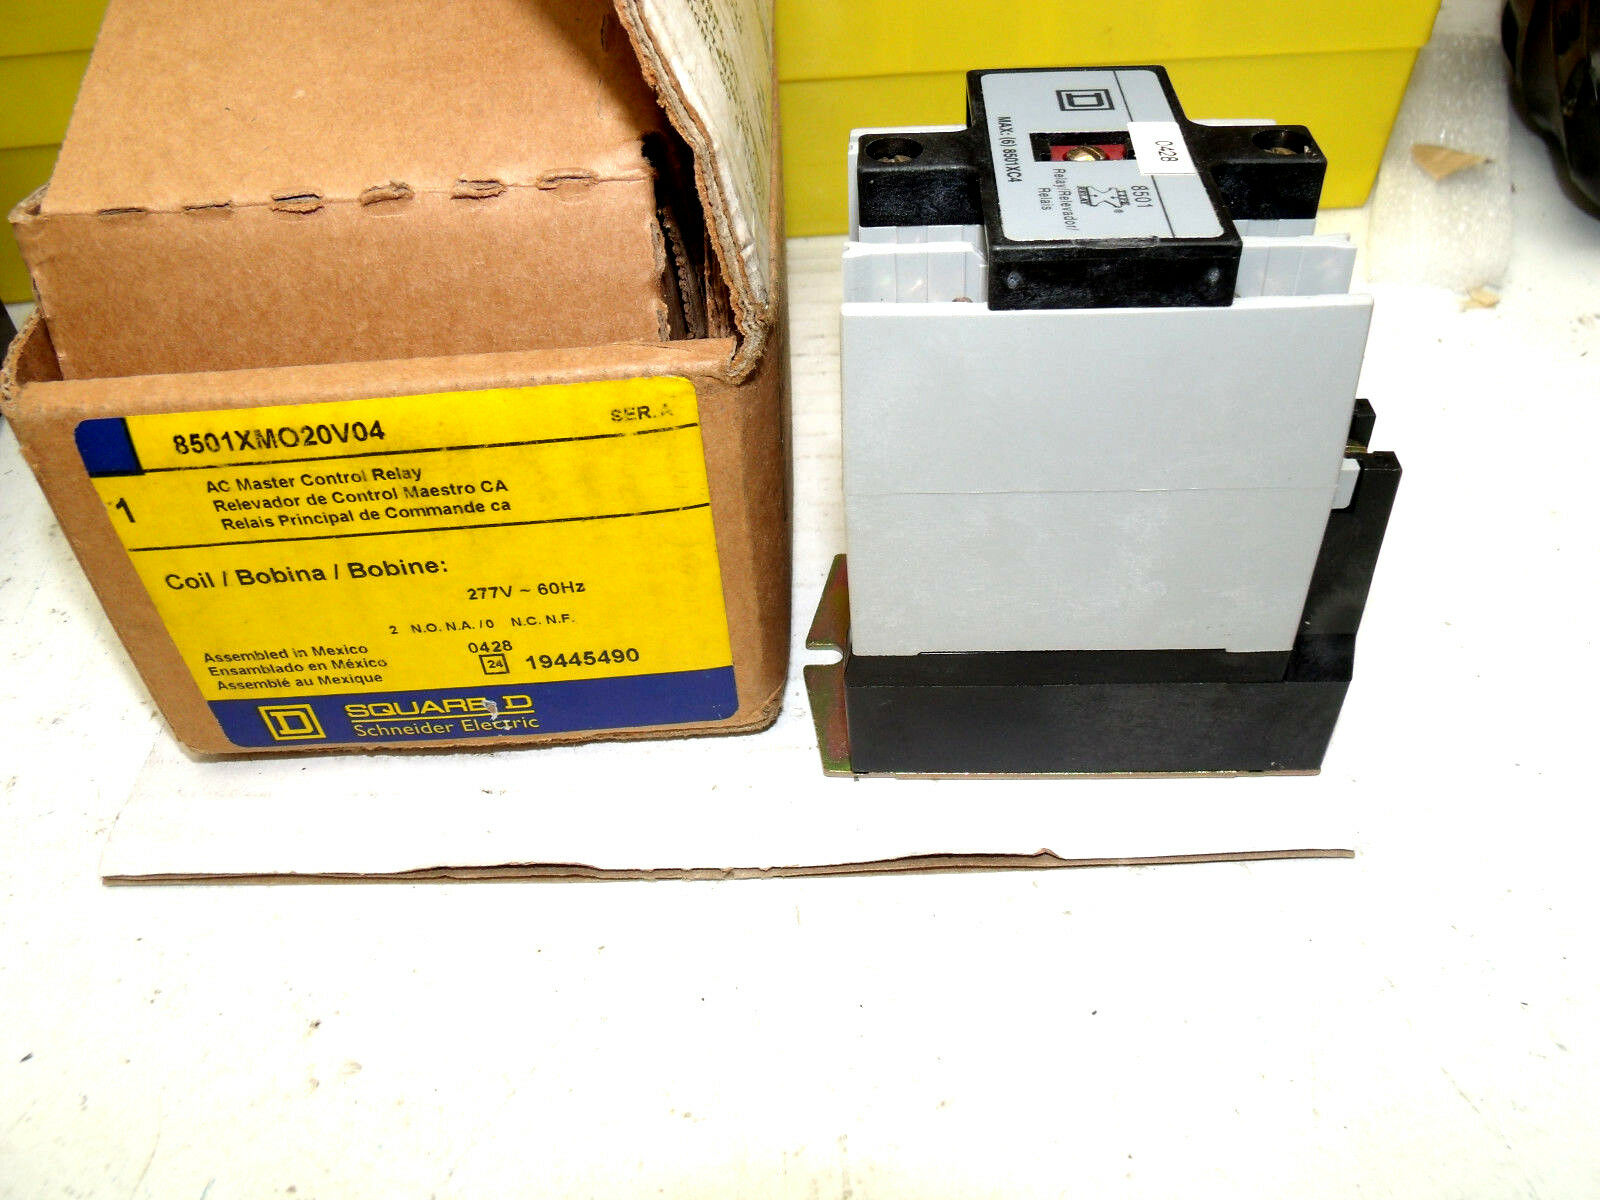 8501XMO20V04 Square-D AC Master Control Relay  New In Box  8501XMO 20V04